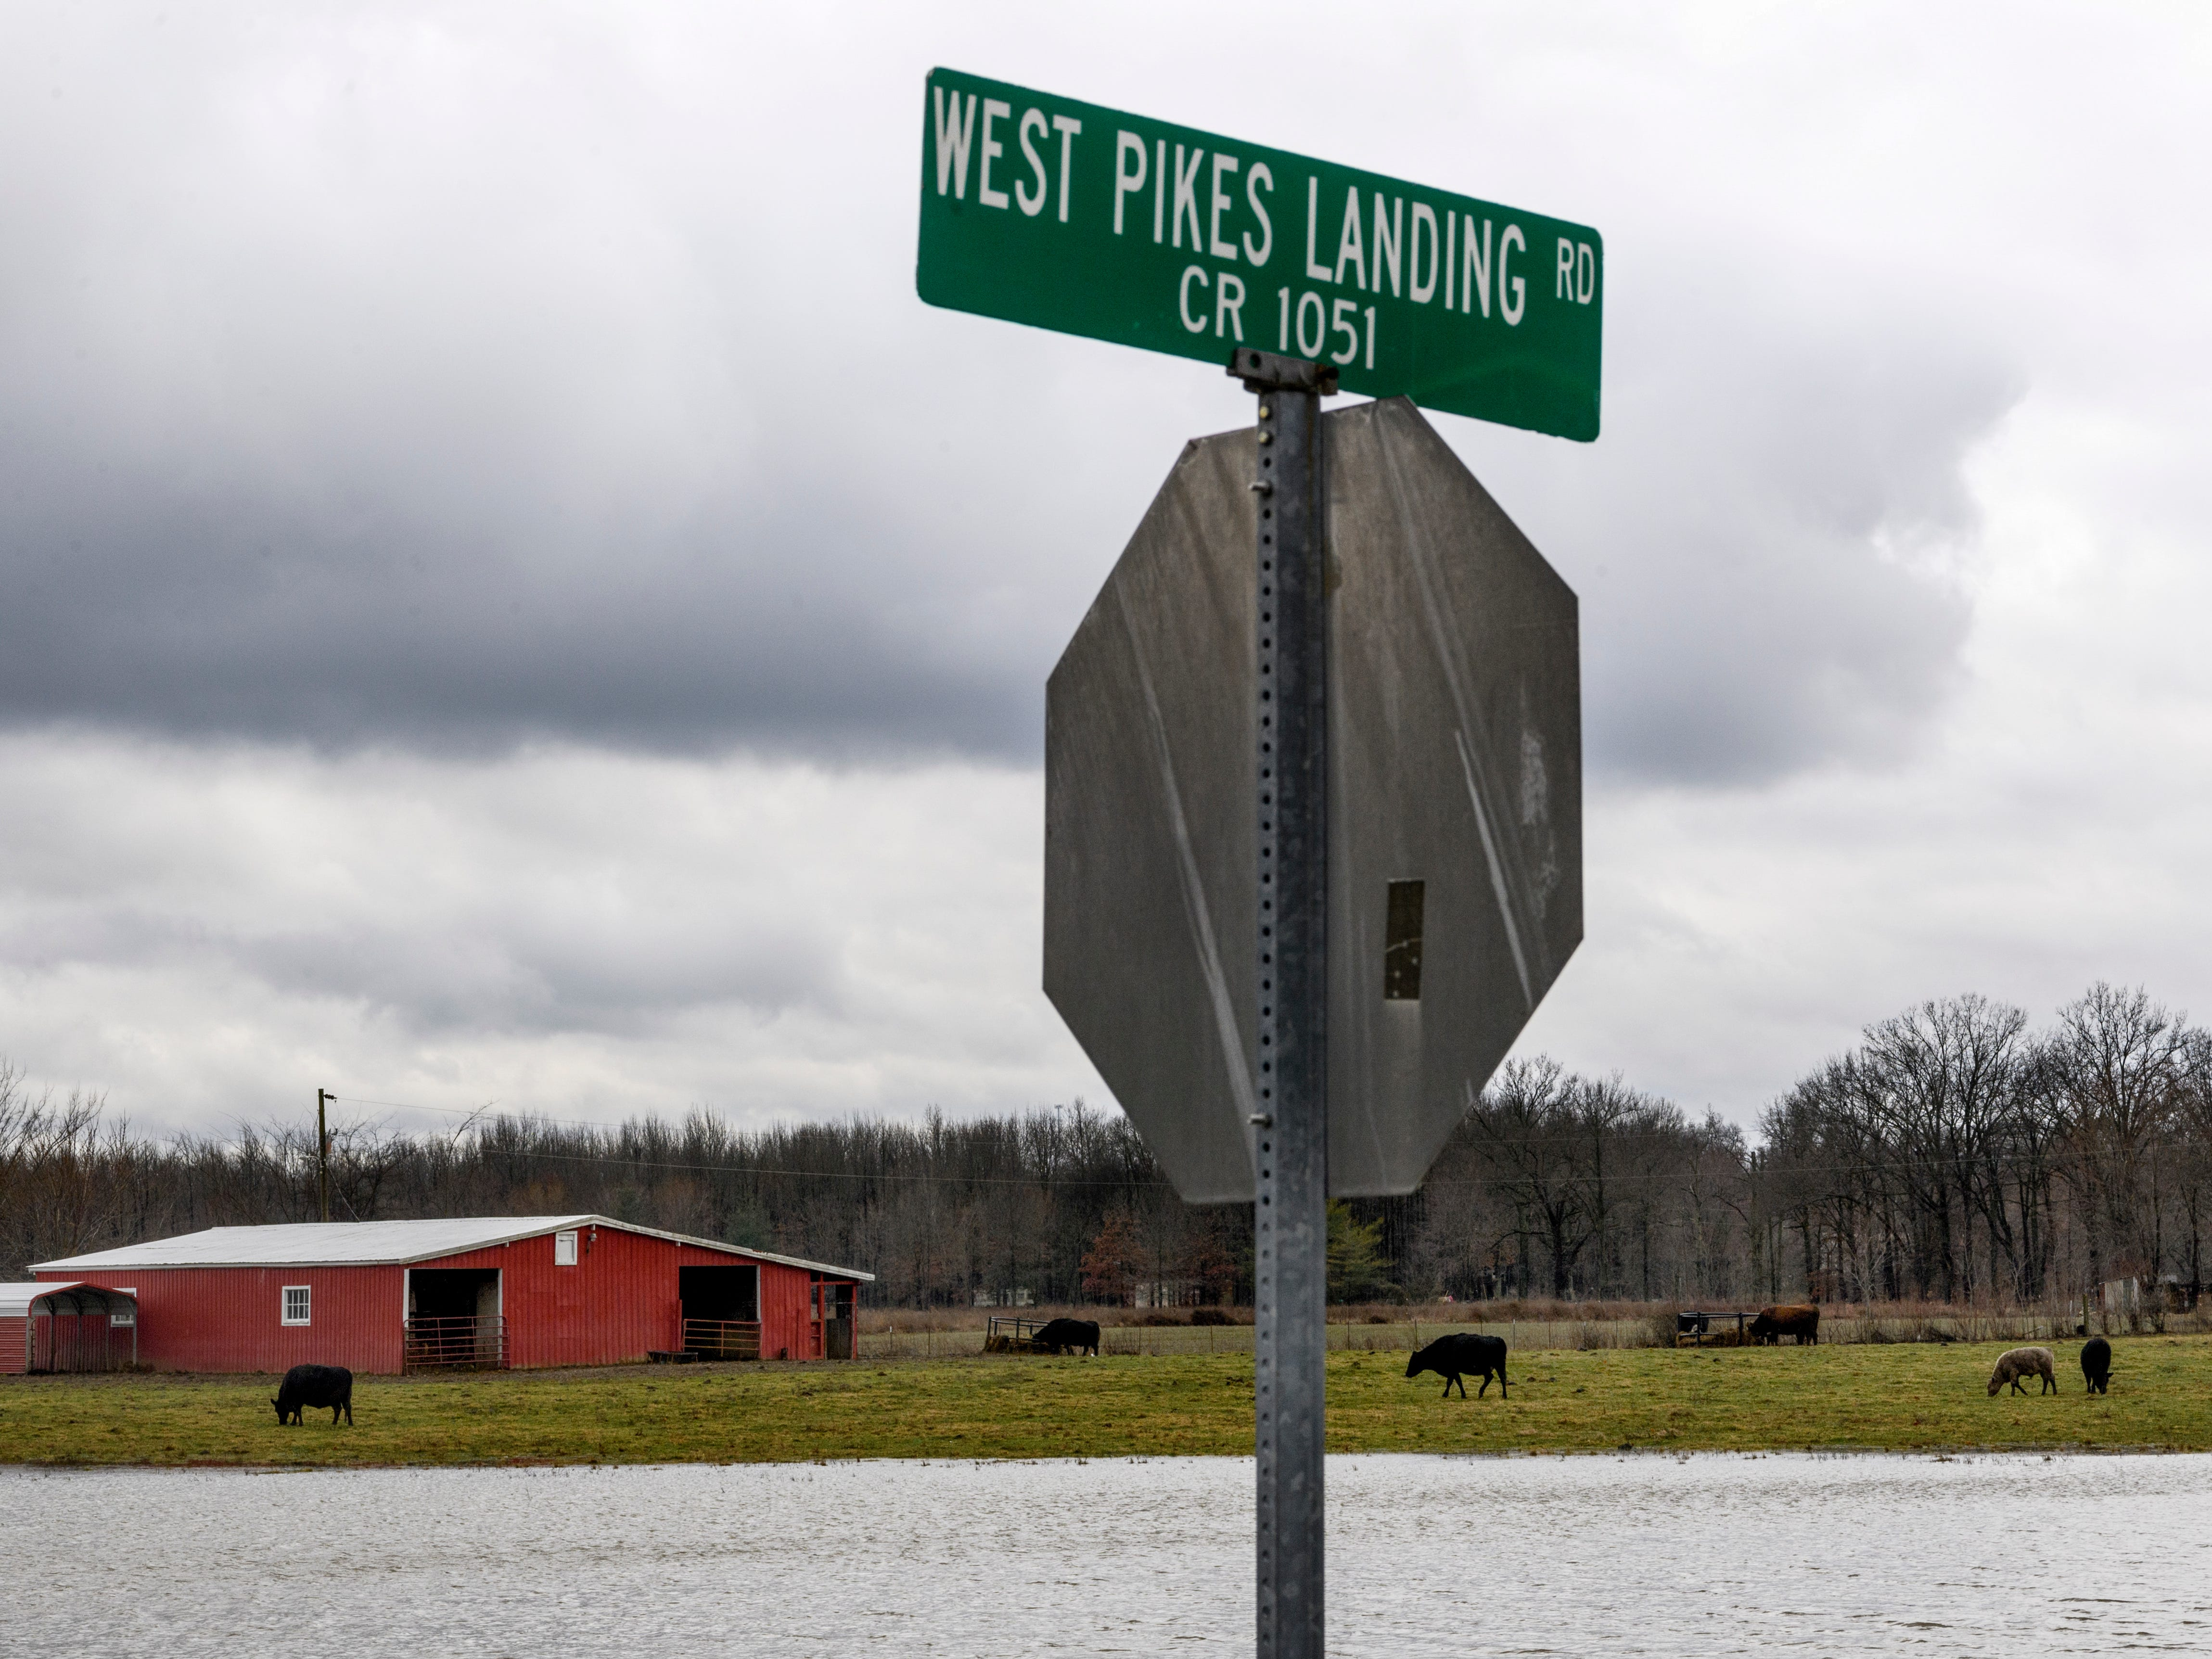 Cows, sheep and other animals graze as flooding begins to happen along West Pikes Landing Rd and KY-811 in Reed, Ky., Tuesday, Feb. 12, 2019. As of early Tuesday afternoon, the Ohio River at Evansville was measured to be 41 feet, one foot below flood stage, and the current forecast calls for the river to crest on Sunday at close to 44 feet.